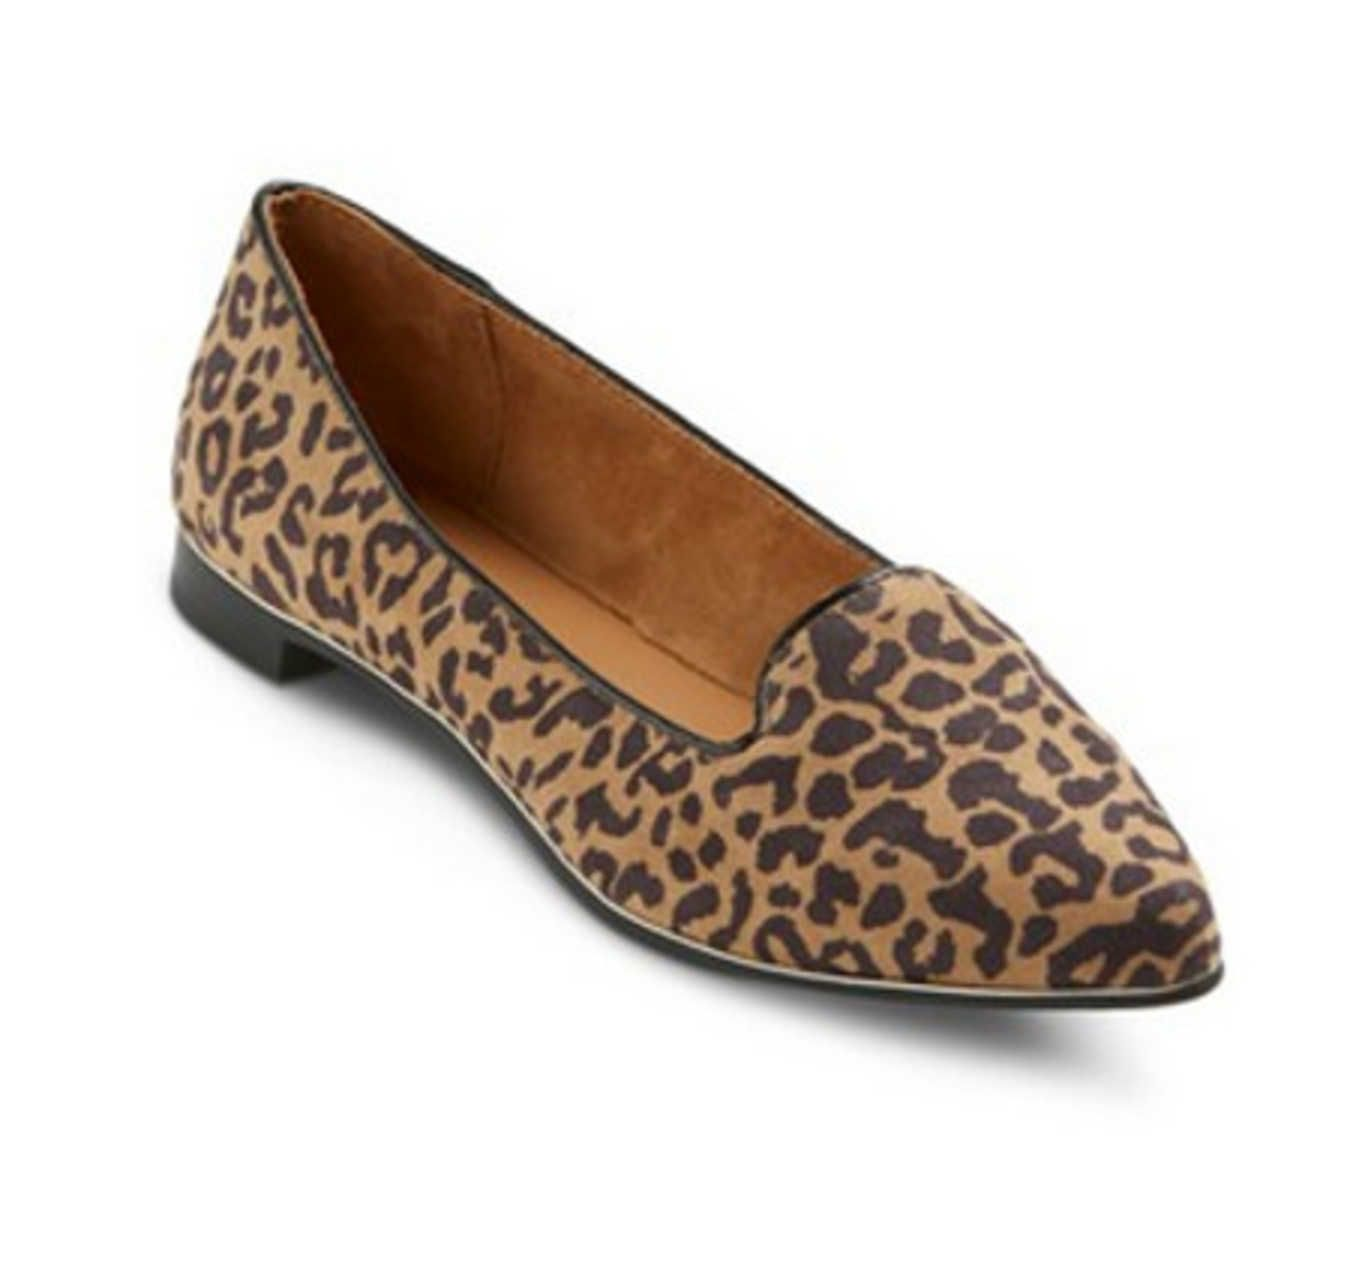 cac210140007 Fabulous Find of the Week: Target Leopard Loafers. These cute and trendy  loafers will add a fun pop of print to any outfit!